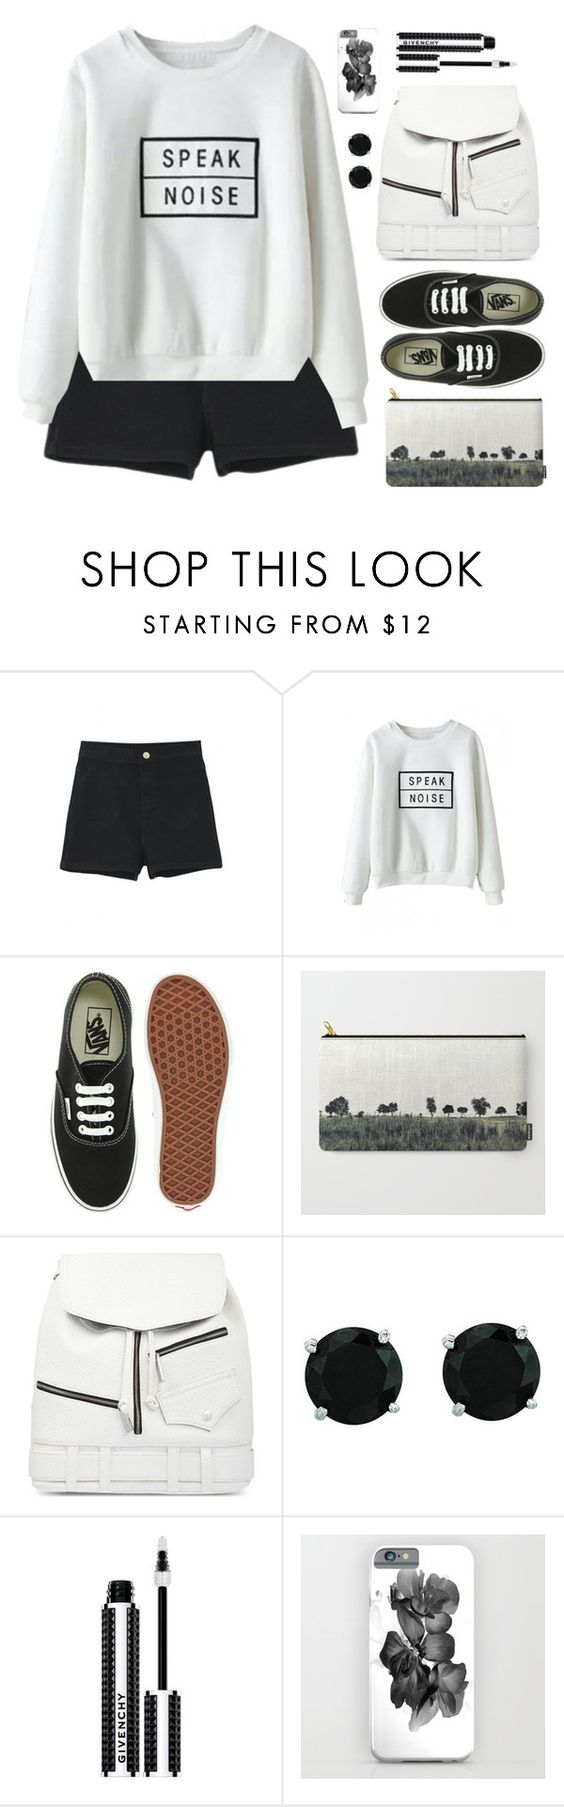 """Speak _ beautiful halo"" by by-jwp ❤ liked on Polyvore featuring Vans, Skinnydip, BillyTheTree, Givenchy, blackandwhite and beautifulhalo"